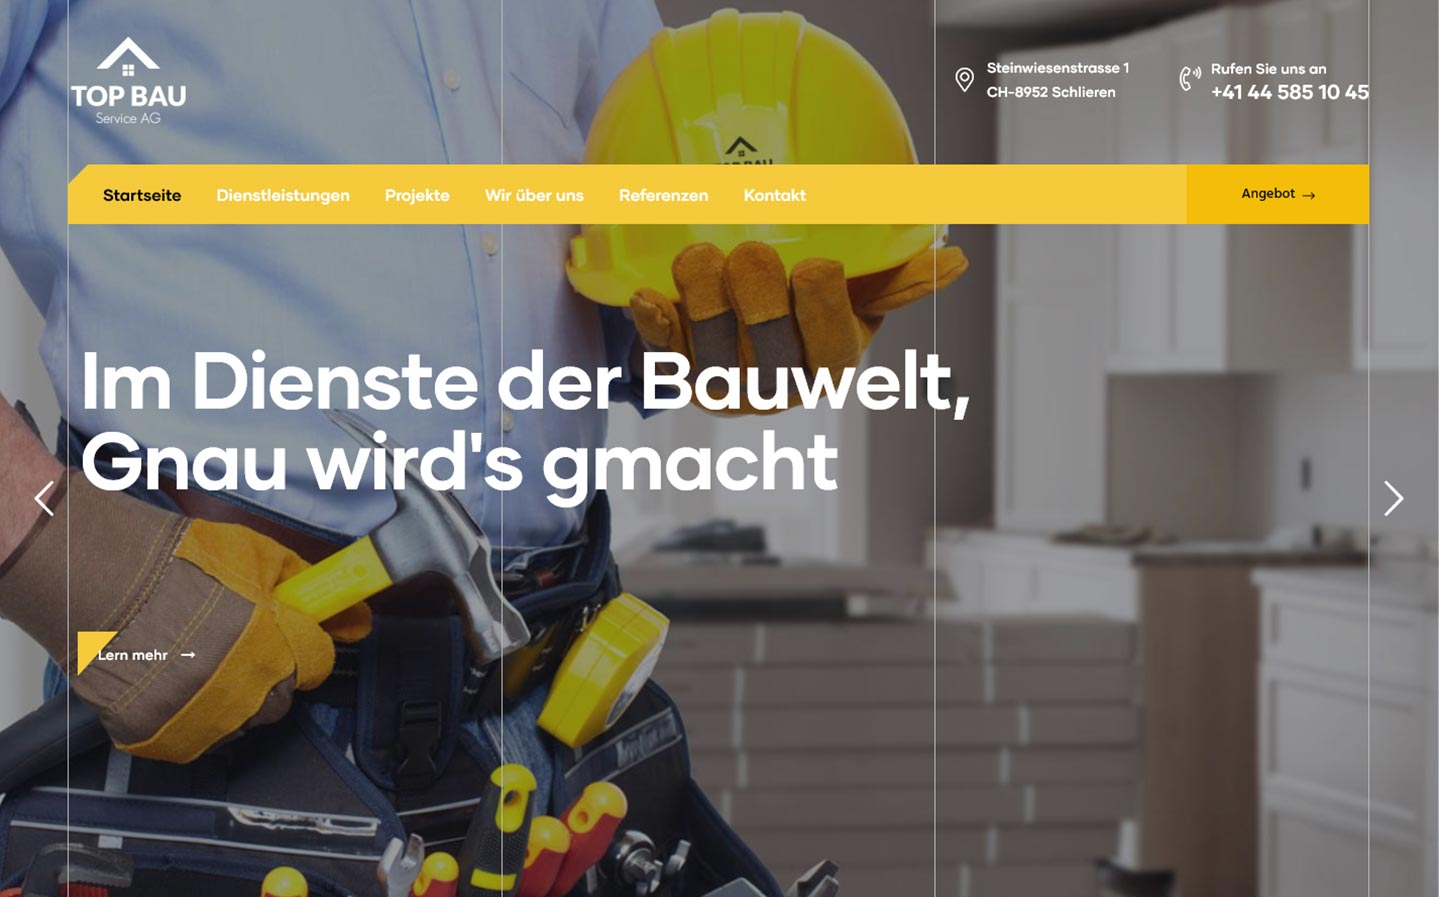 top-bau-ag-website-mockup.jpg